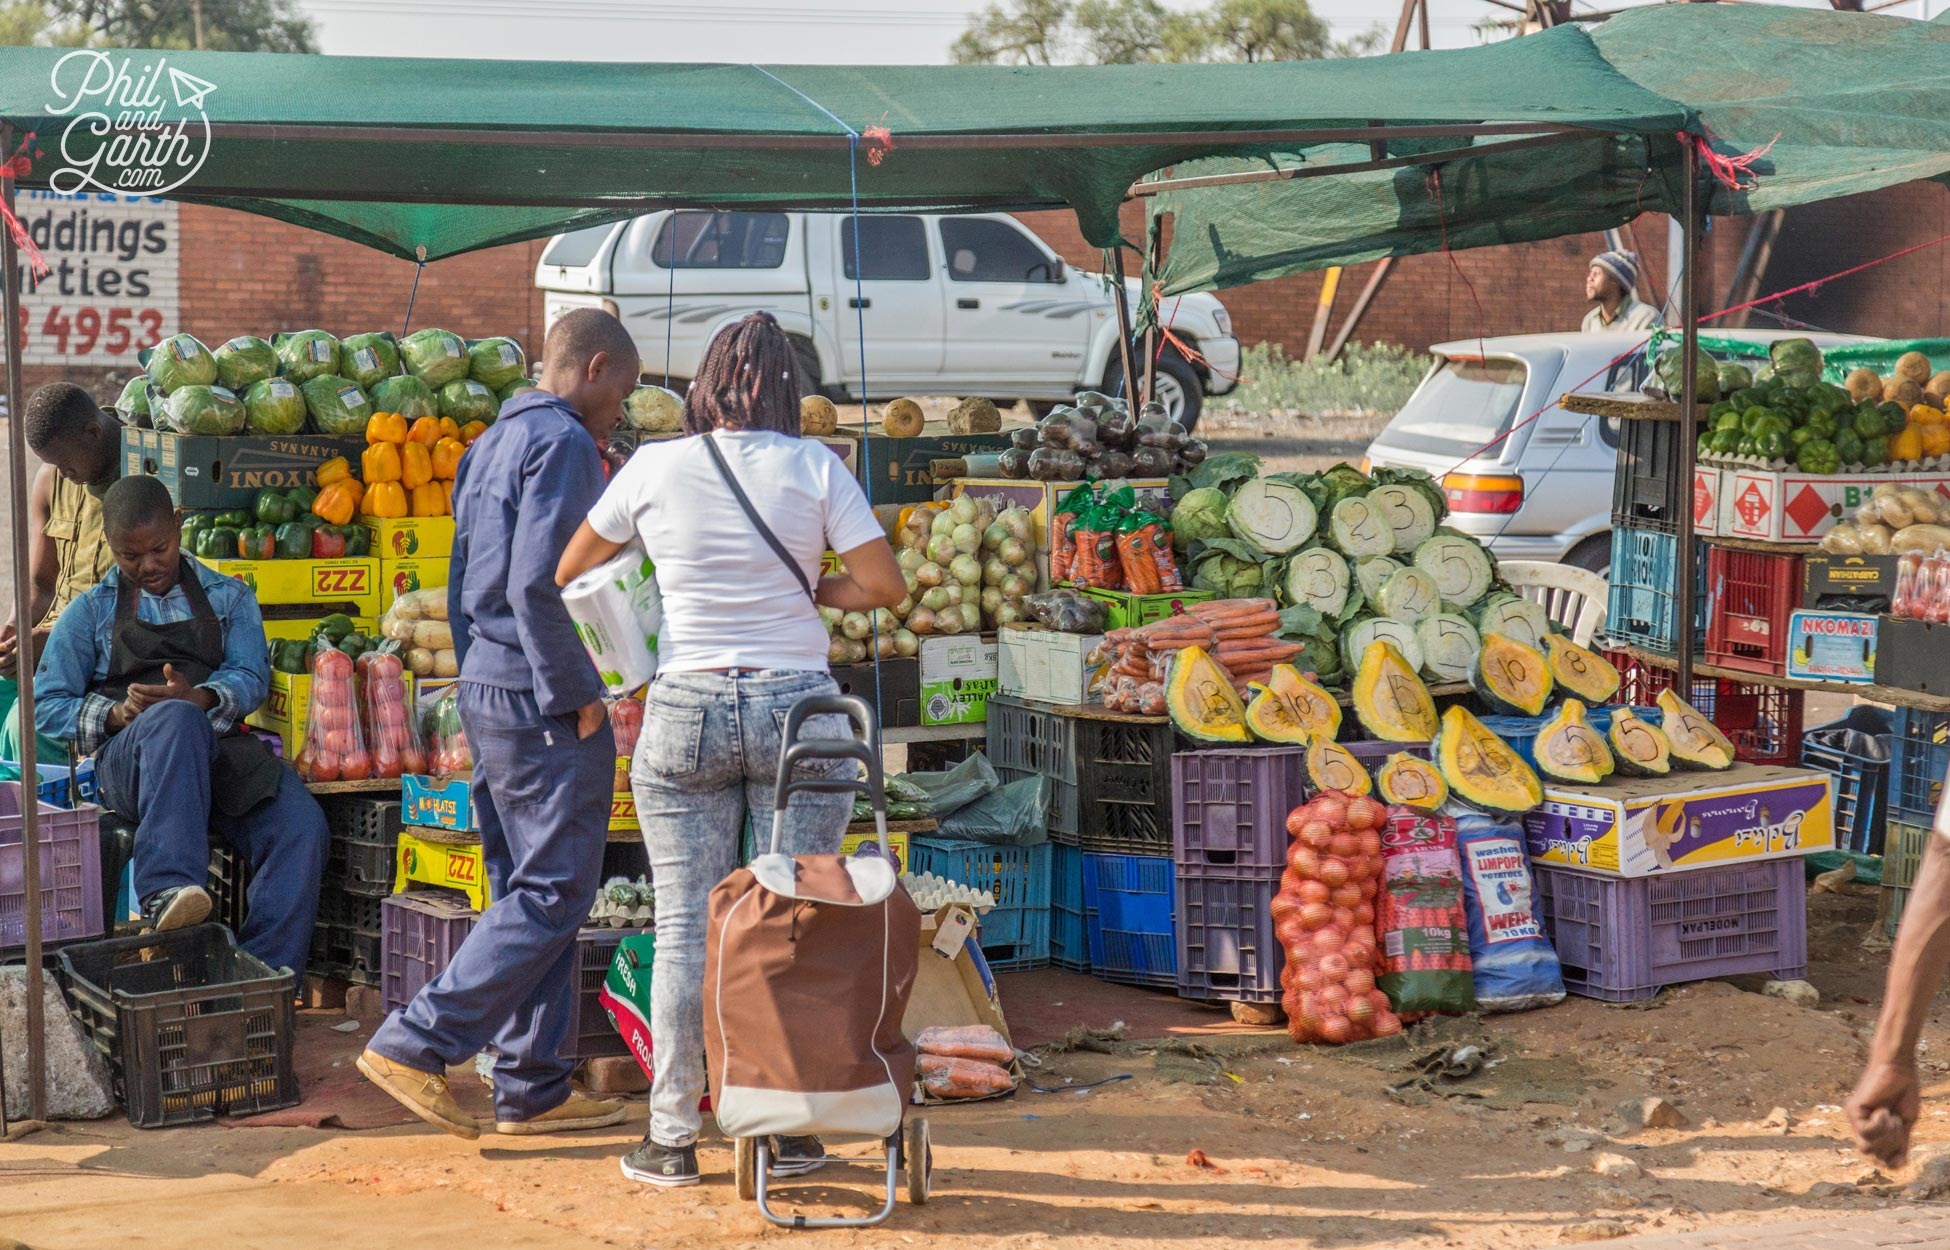 A fruit and veg stall in Soweto